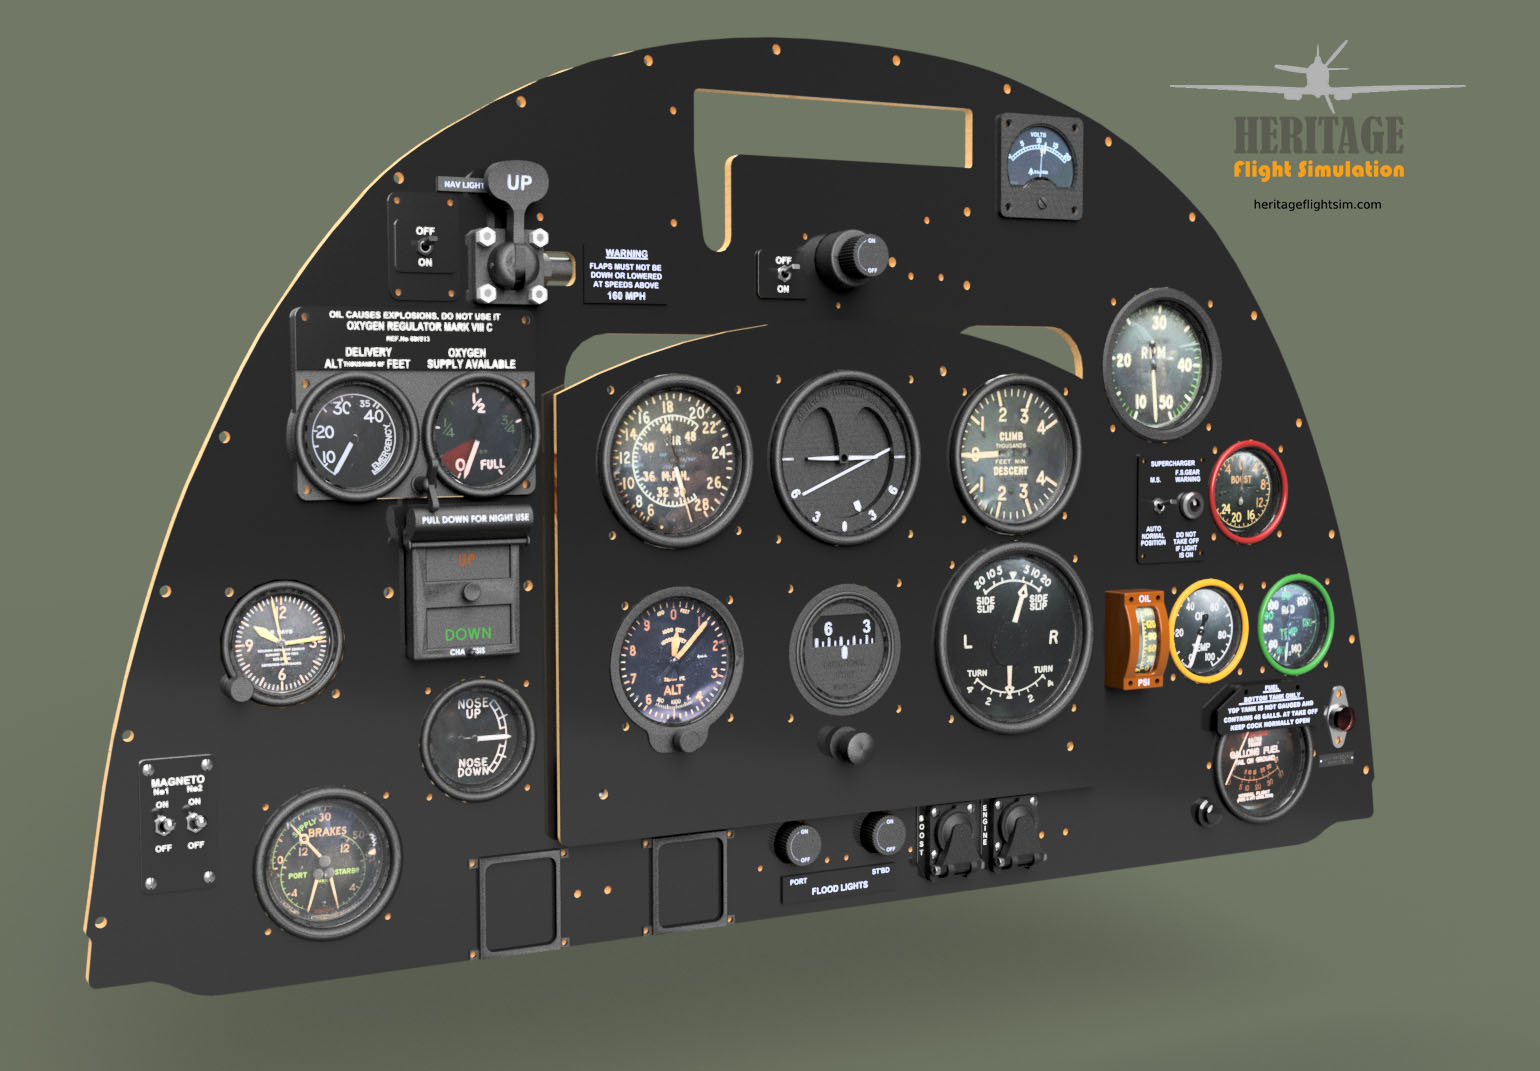 Showing off the Six Pack – Heritage Flight Simulation